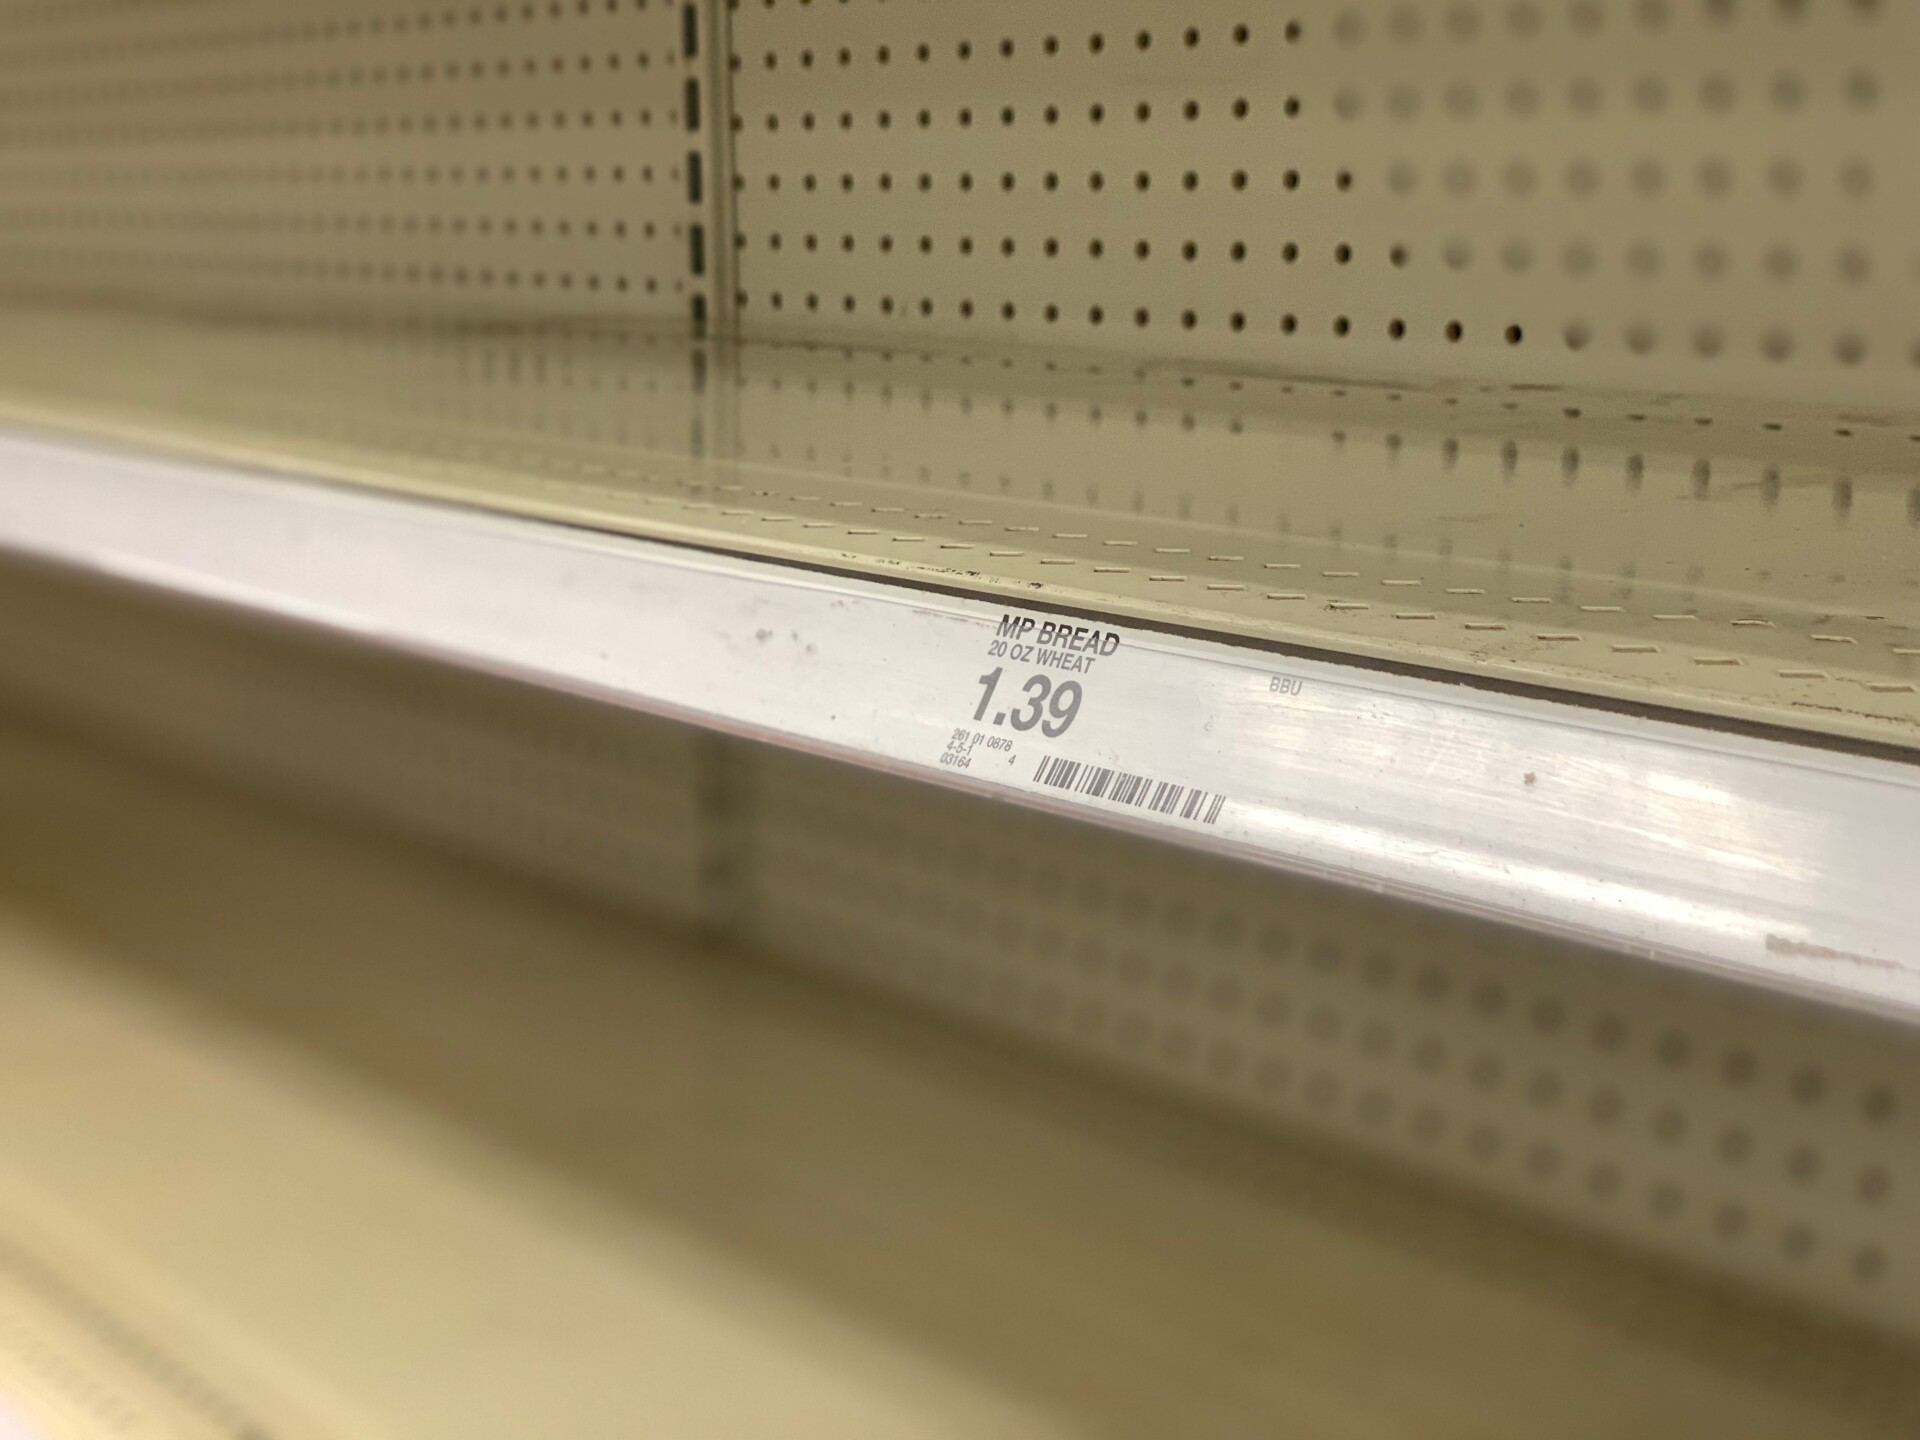 Bread shelves at a Metairie, Louisiana Target